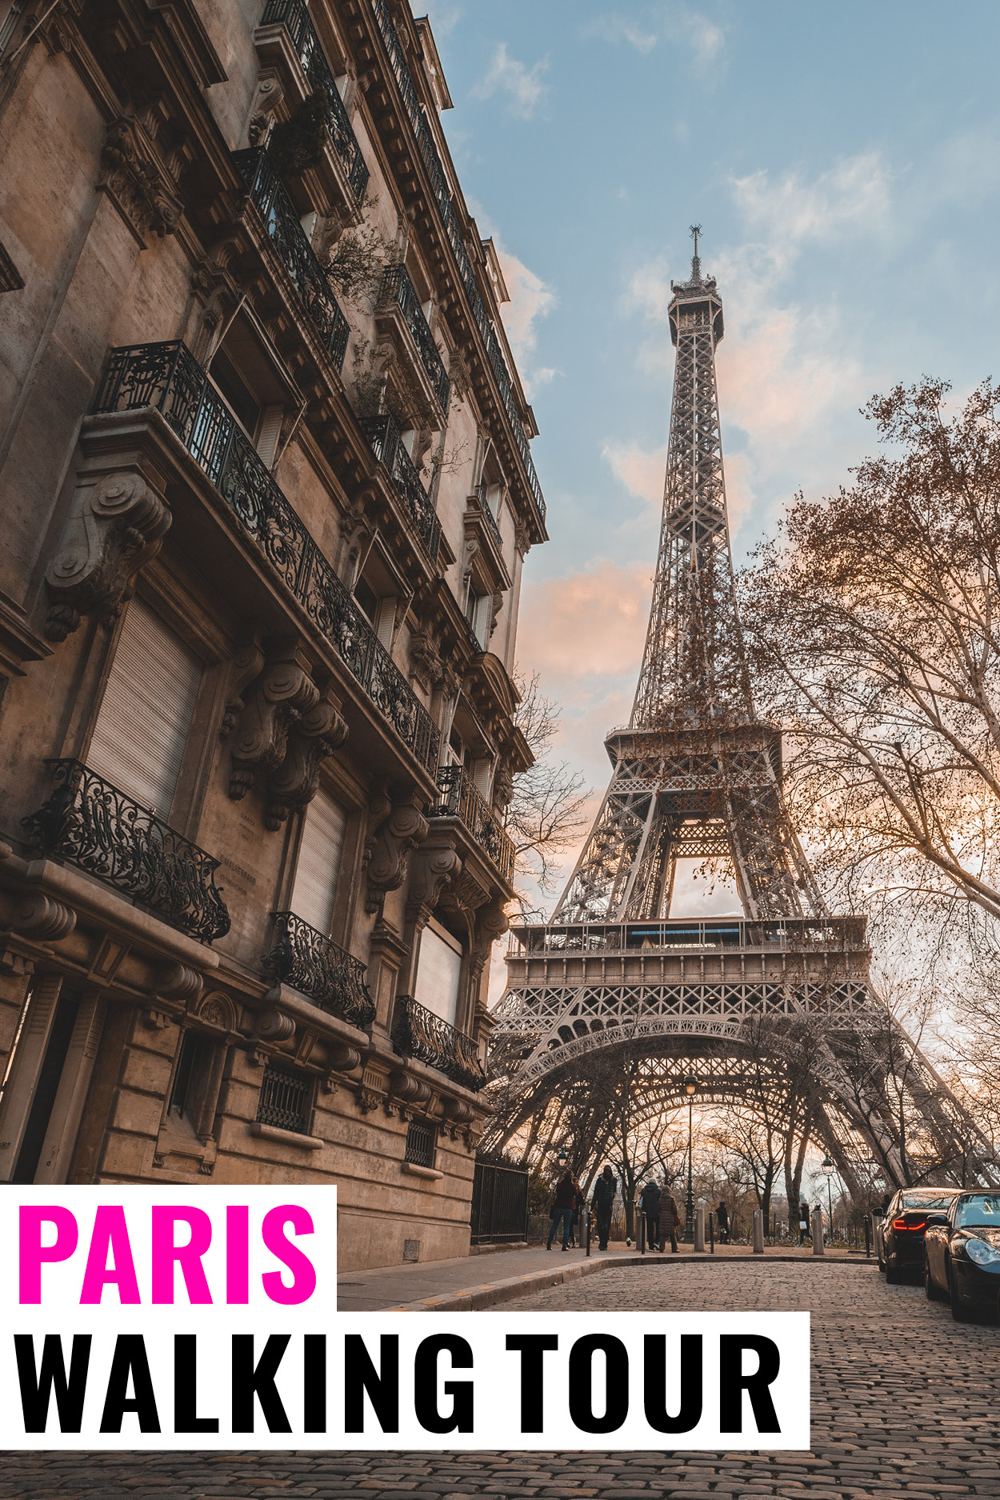 Streets of Paris with Eiffel tower in the background with text that says Paris Walking Tour